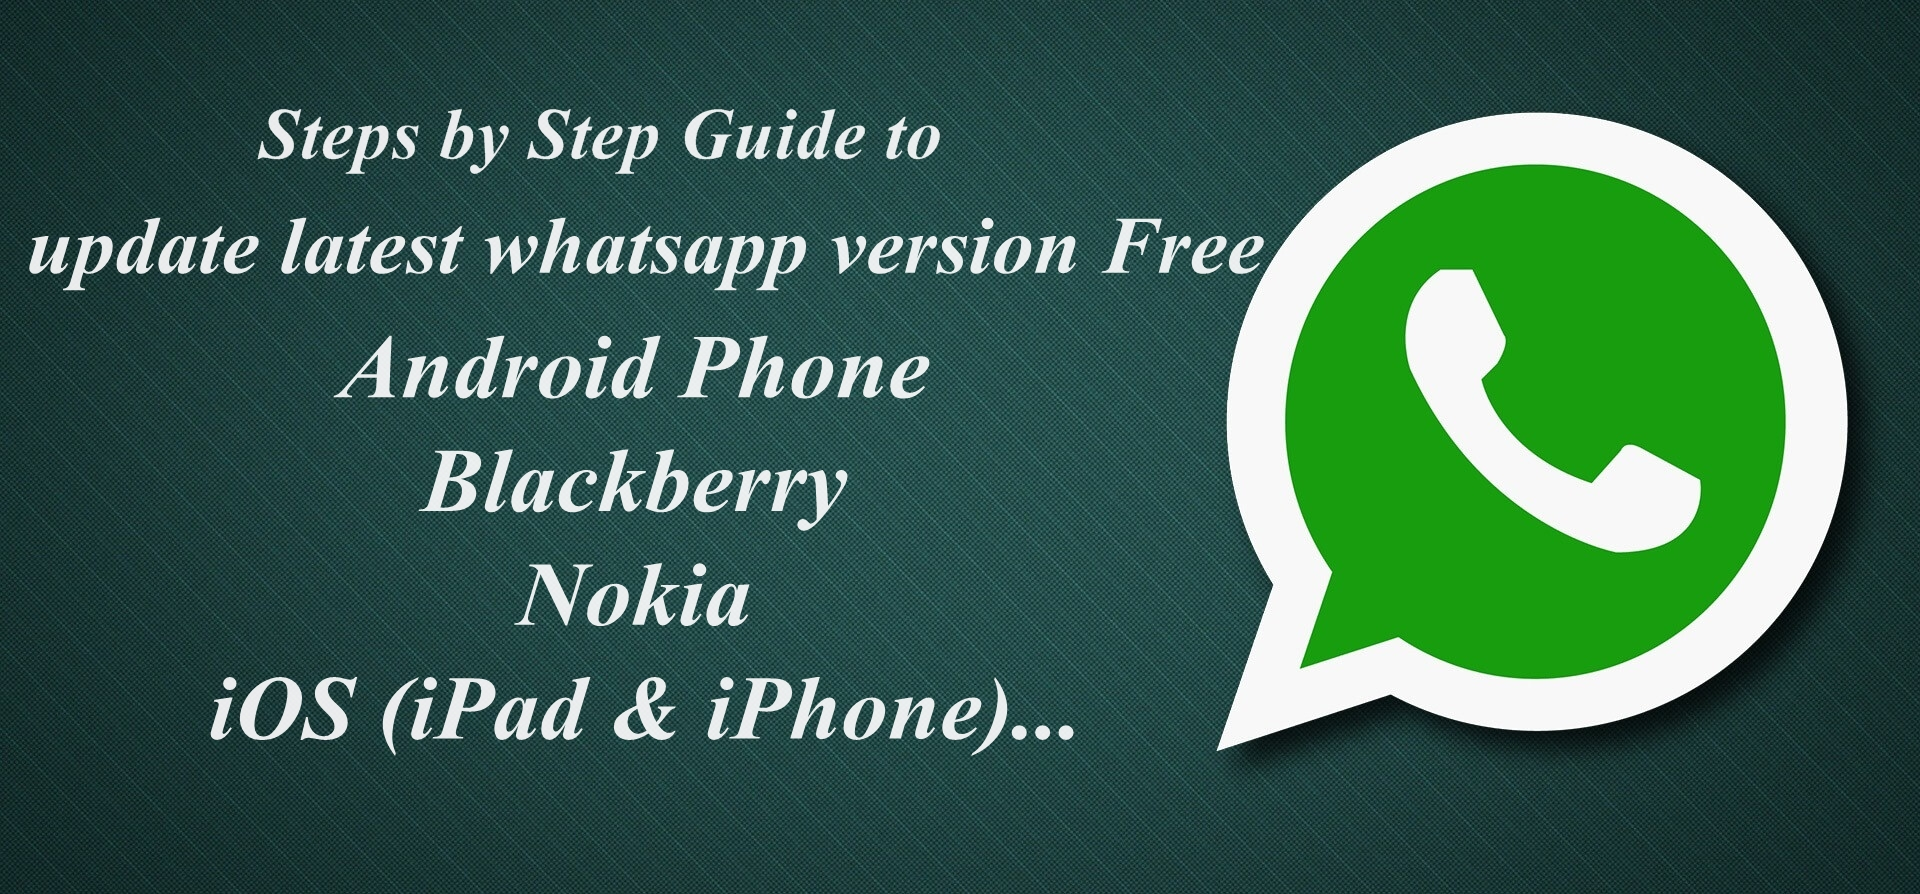 Steps by Step Guides to Update latest whatsapp Messenger version Free for Android Phone, BB, Nokia & iOS